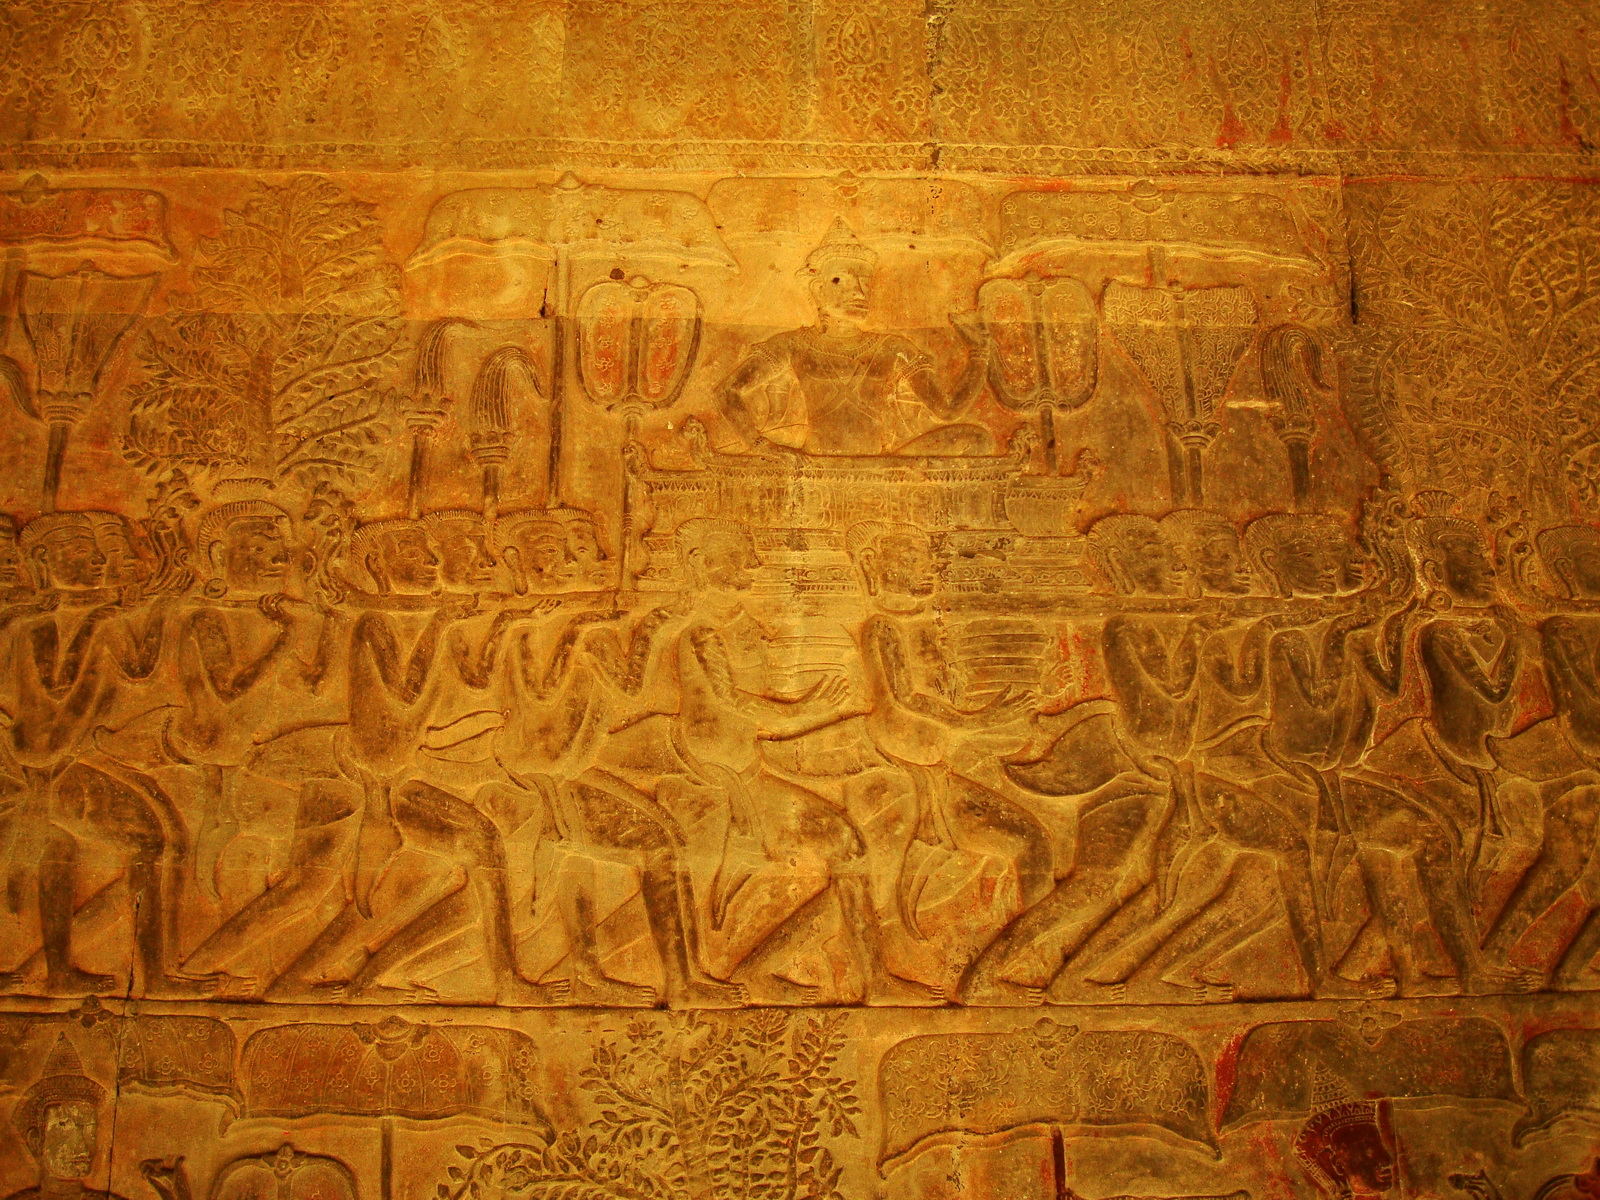 Angkor Wat Bas relief S Gallery E Wing Heavens and Hells 48